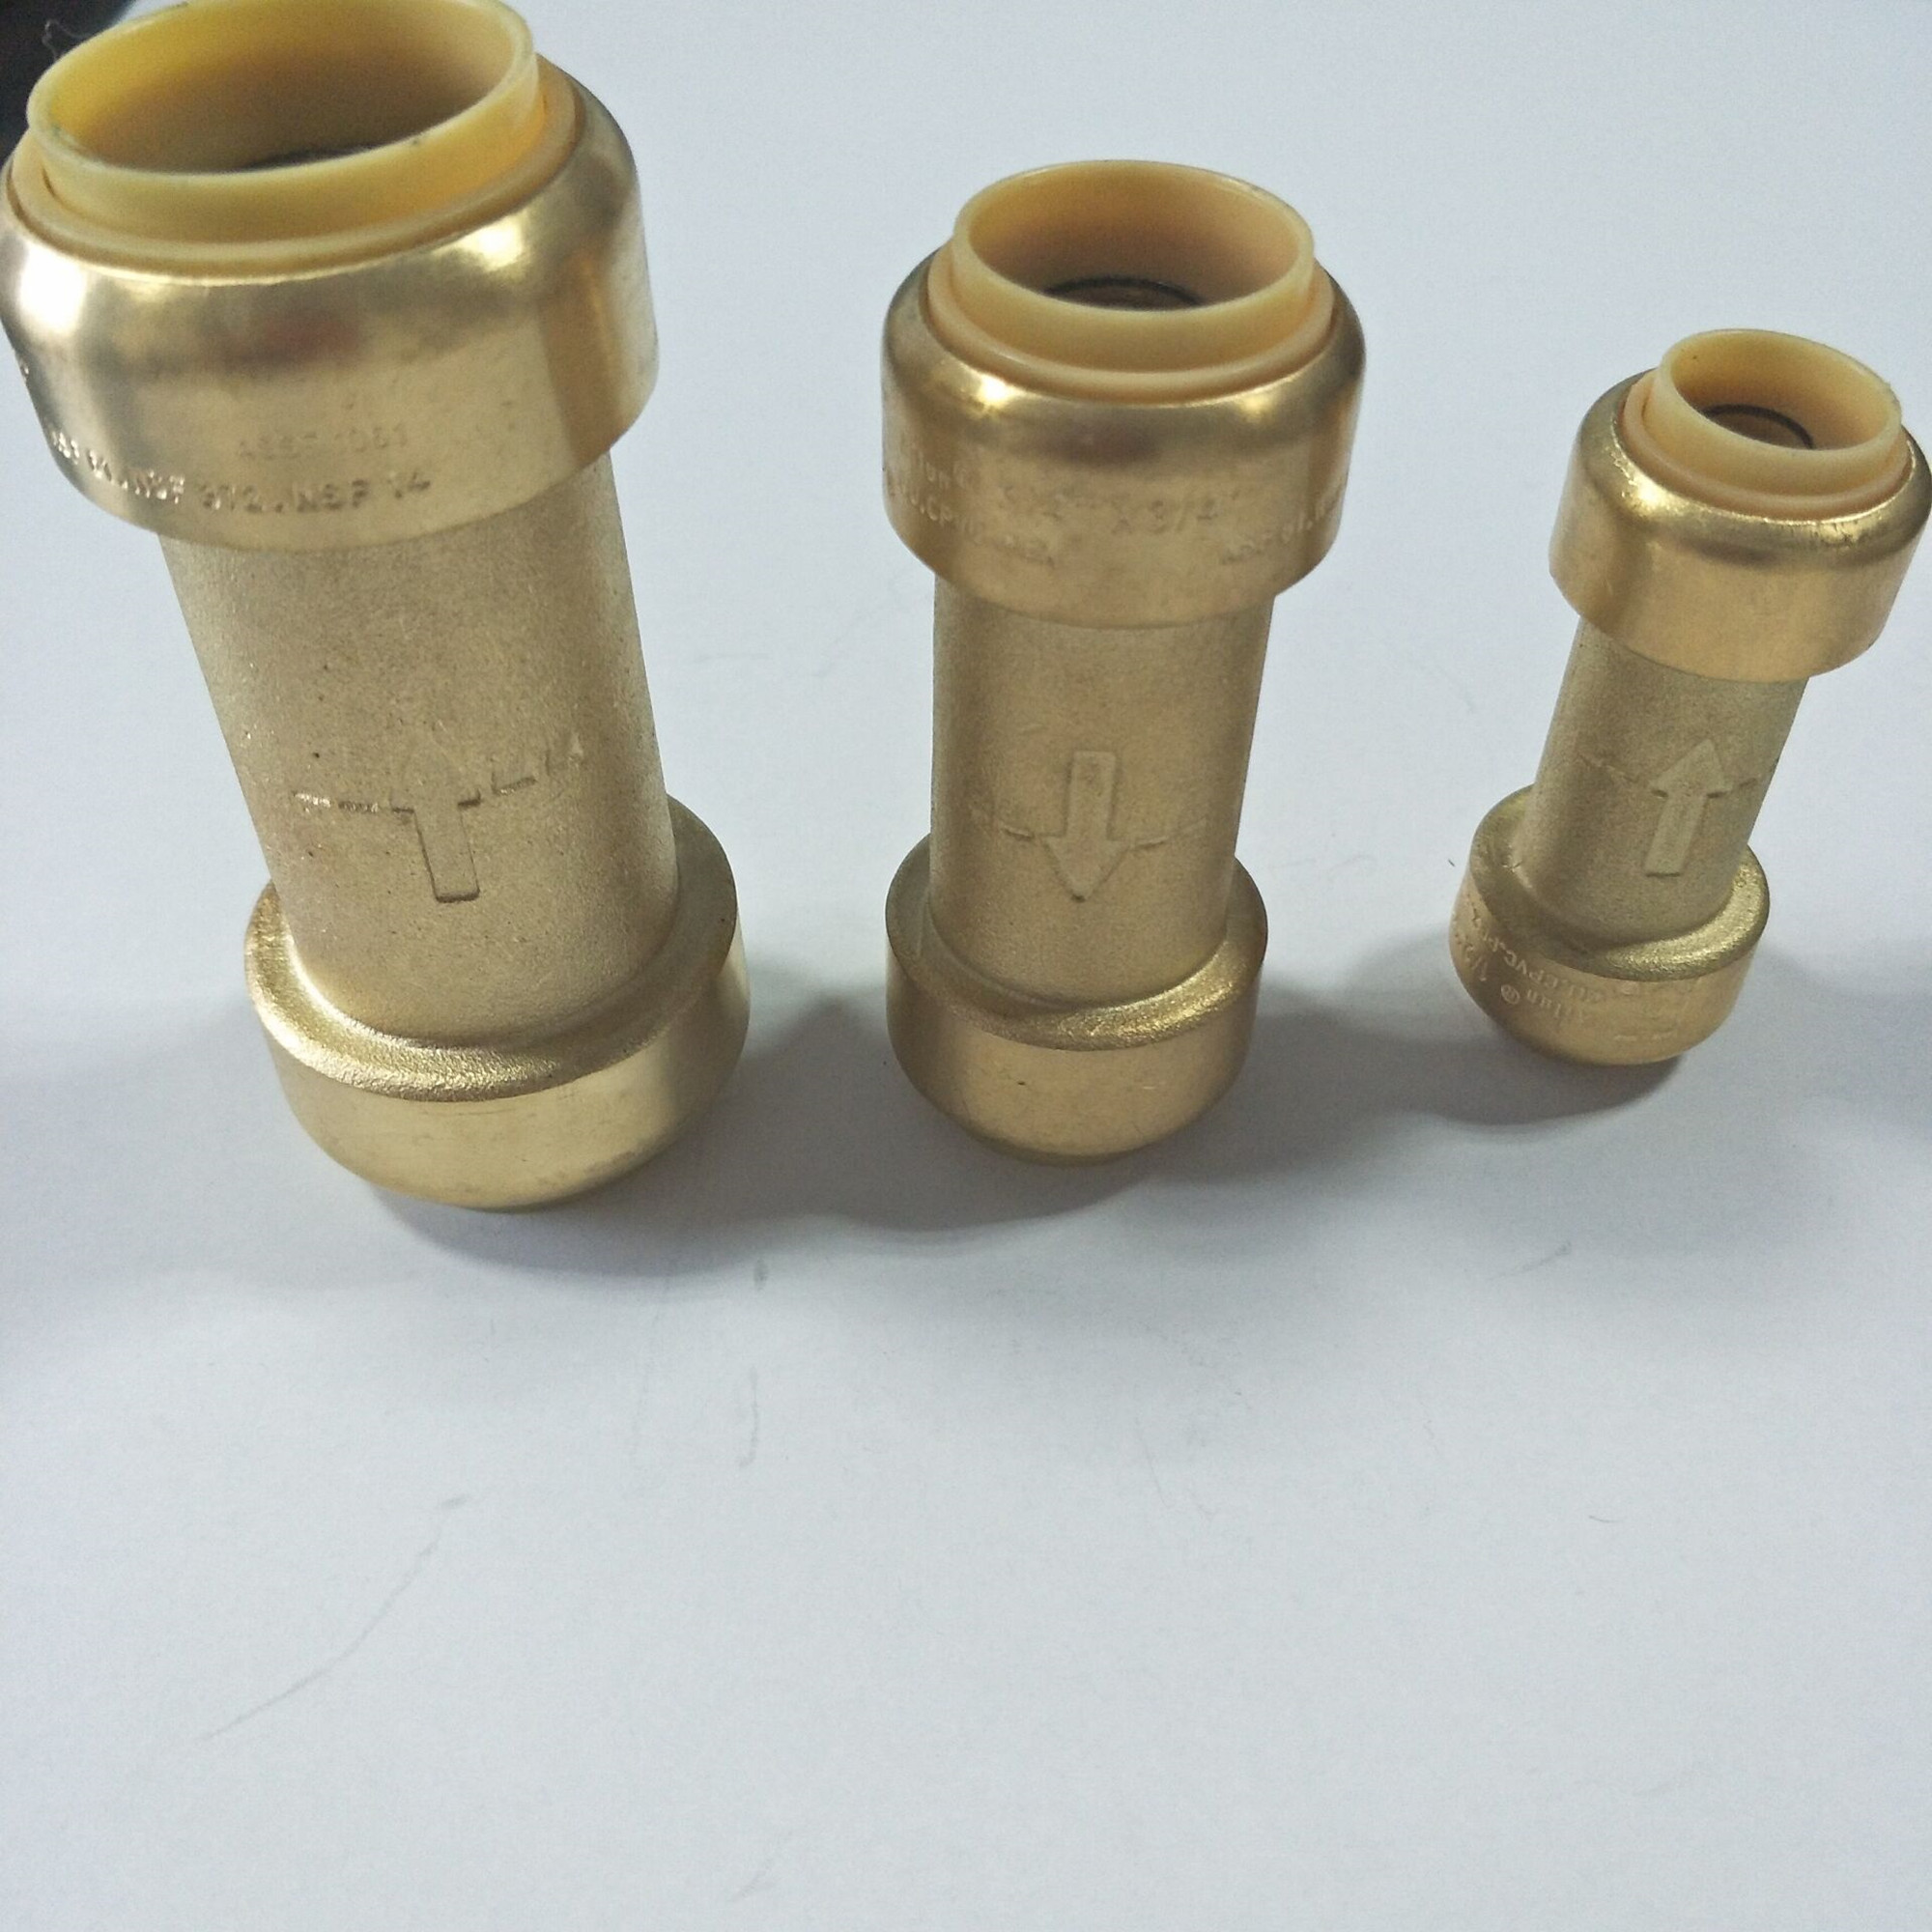 fittings bite for copper cpvc slip couplings pex shark diameter plumbing product x large extra